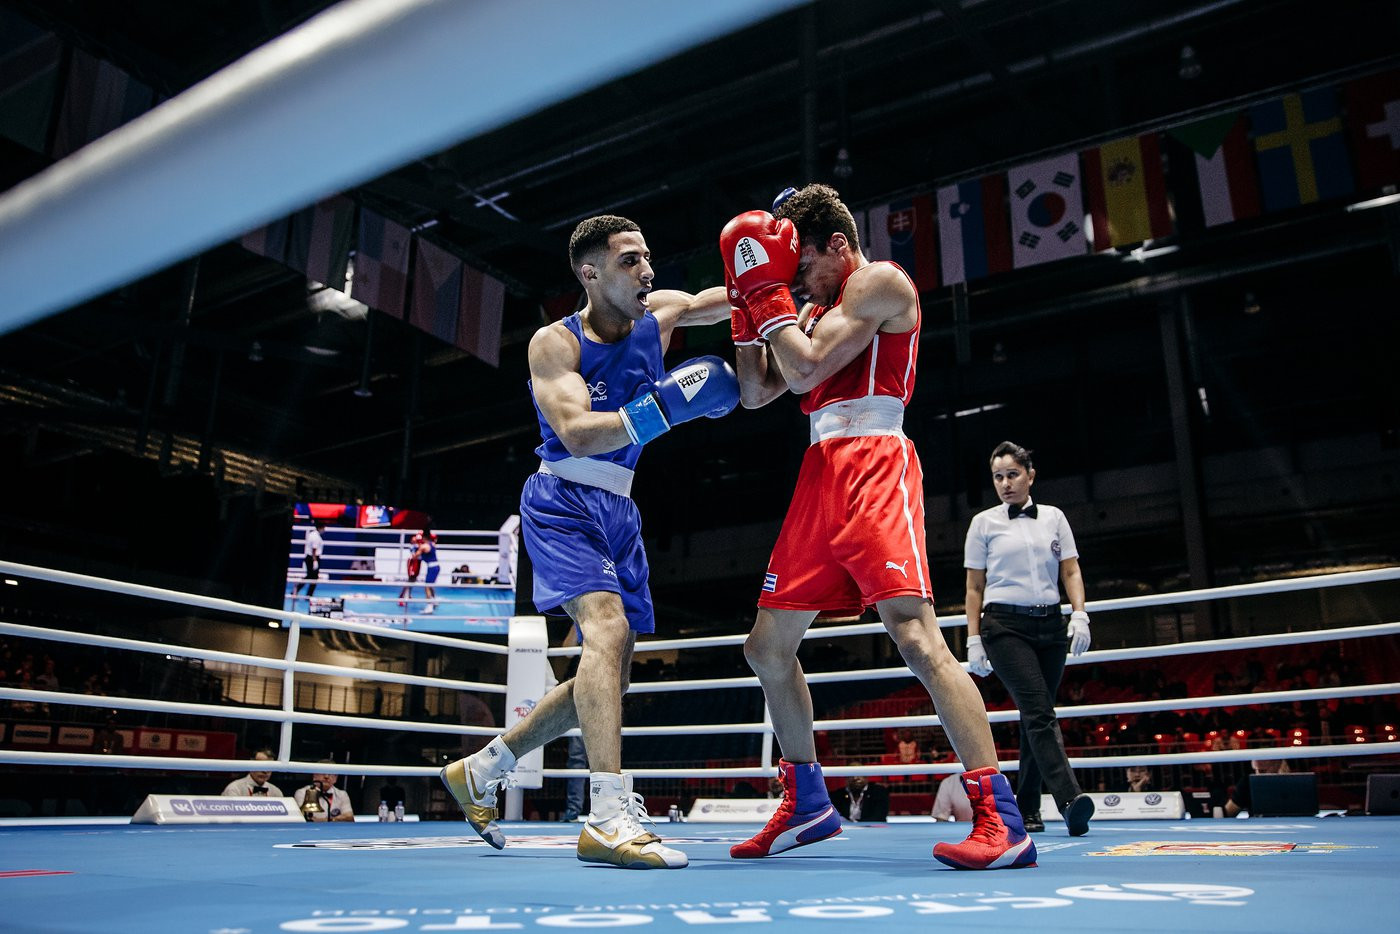 England's Galal Yafai stunned the flyweight top seed and defending champion, Yosvany Veitia of Cuba, recording a unanimous victory ©Yekaterinburg 2019